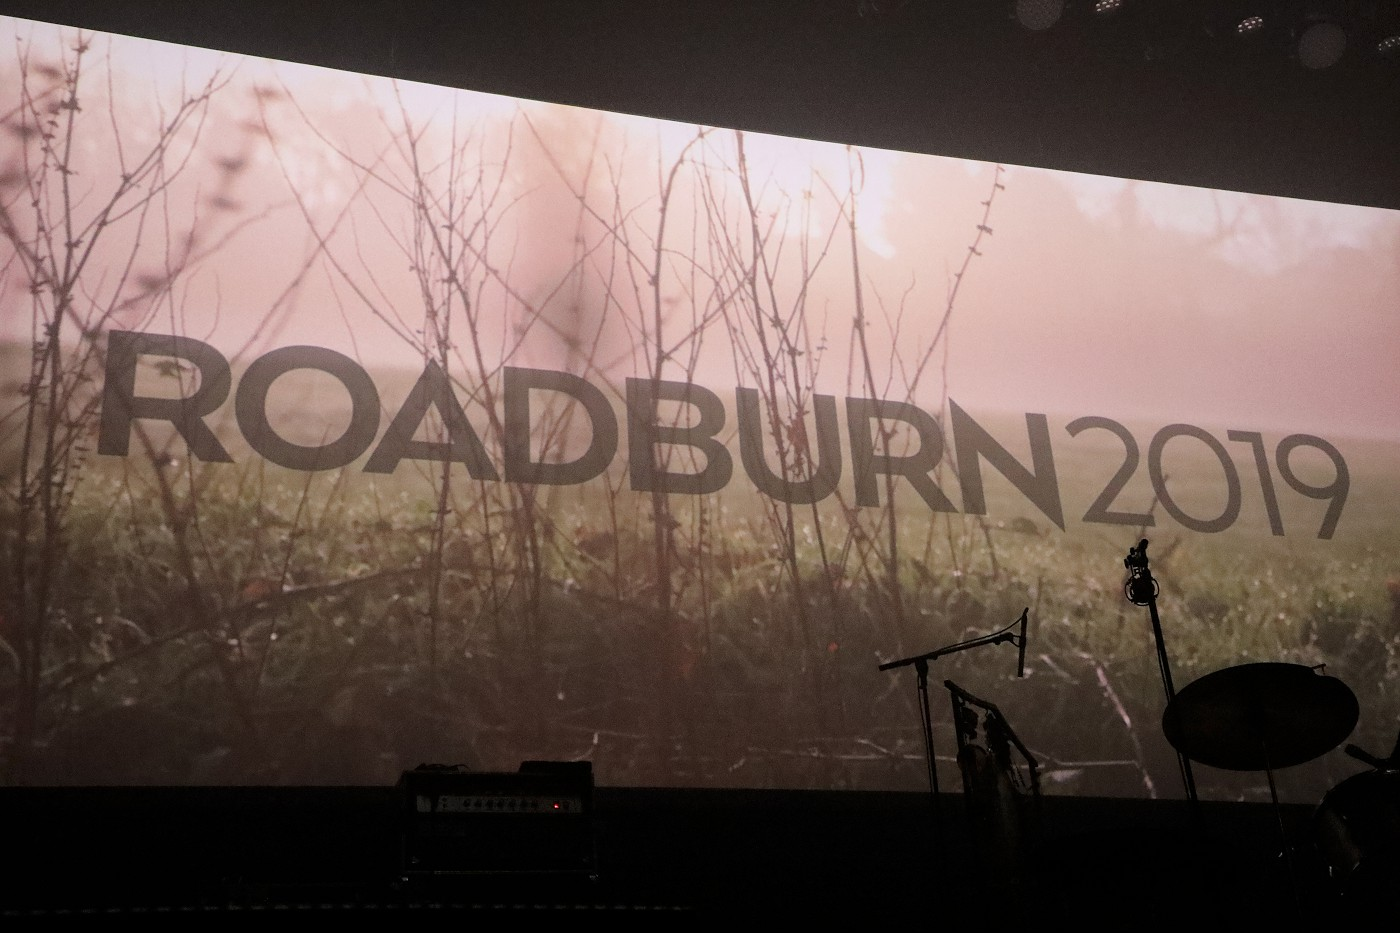 ROADBURN DAY ONE BANNER (Photo by JJ Koczan)